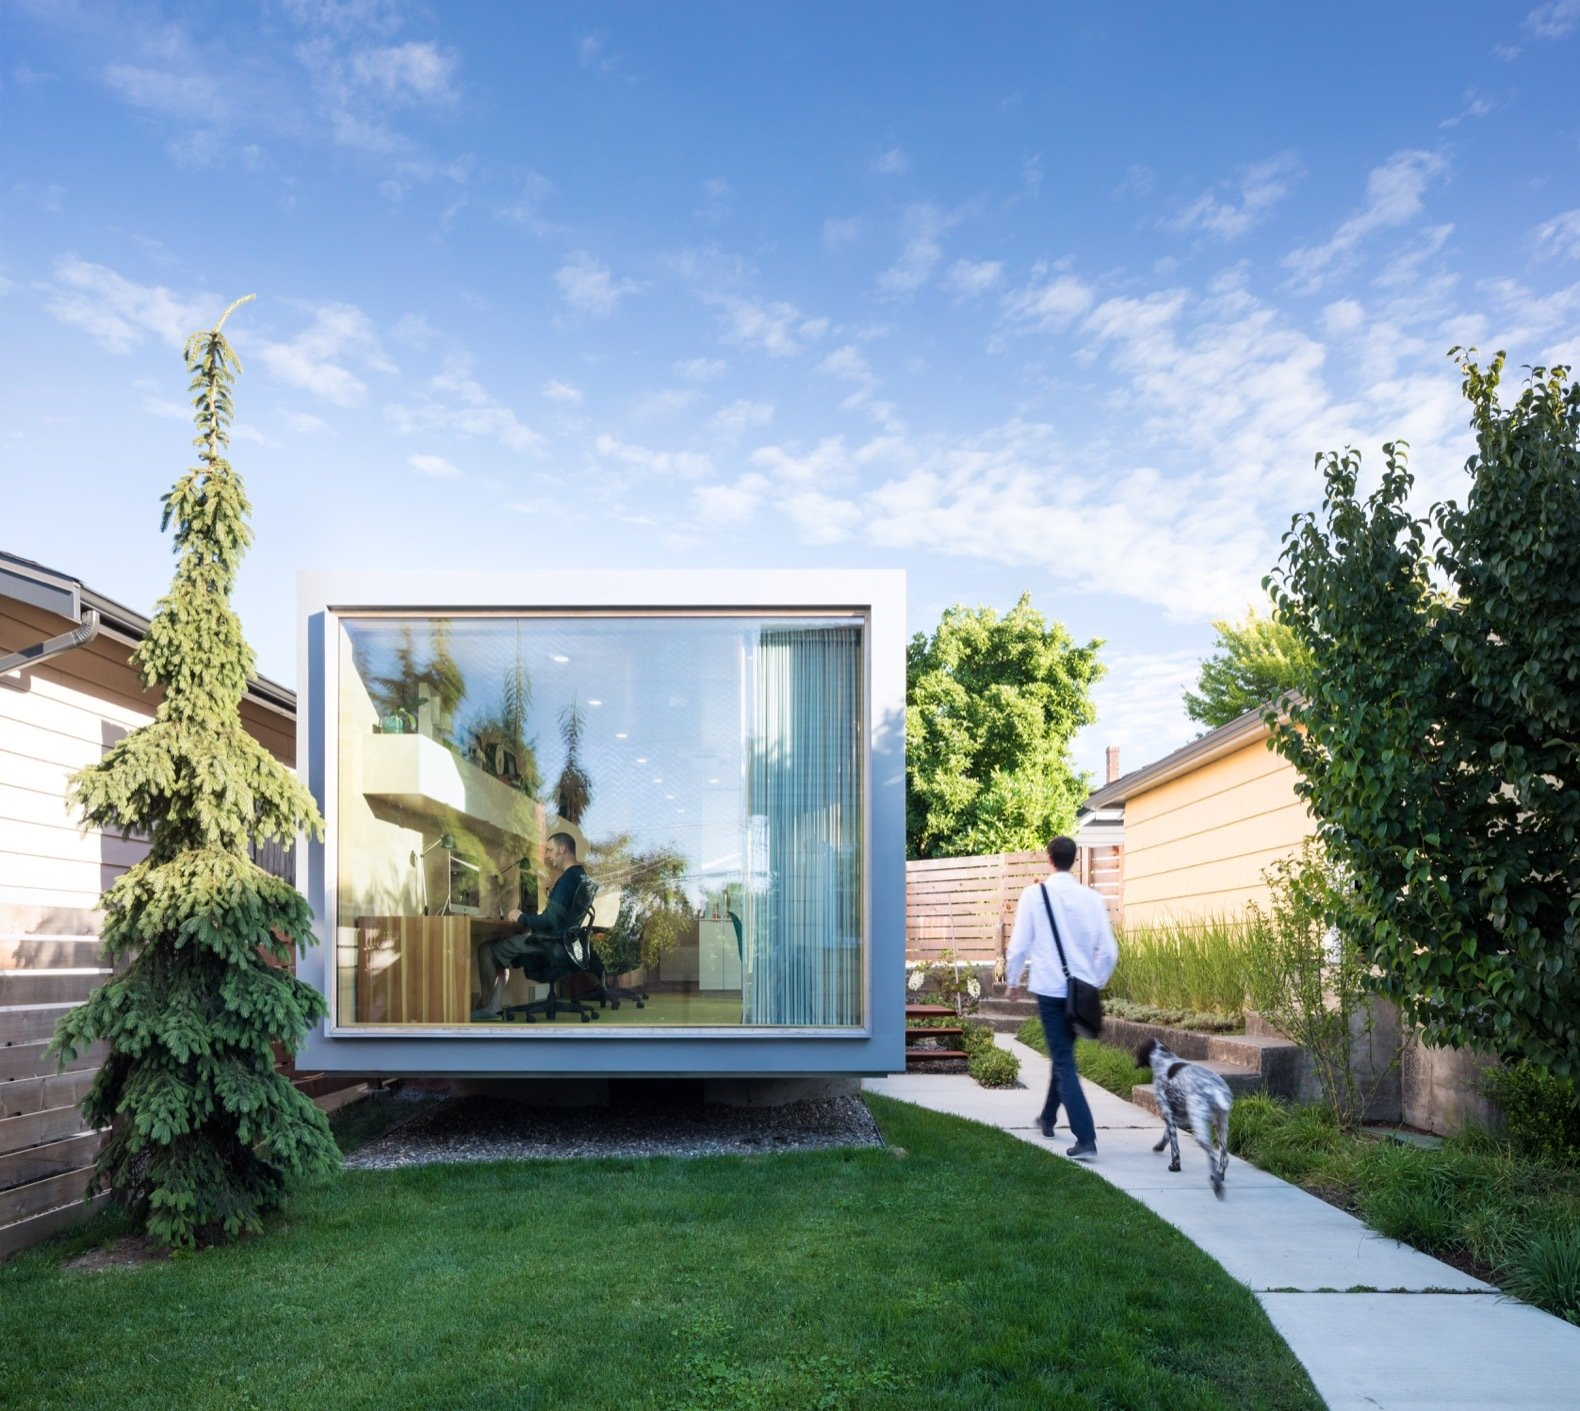 A Shipping Container Turns Into a Backyard Architecture Studio